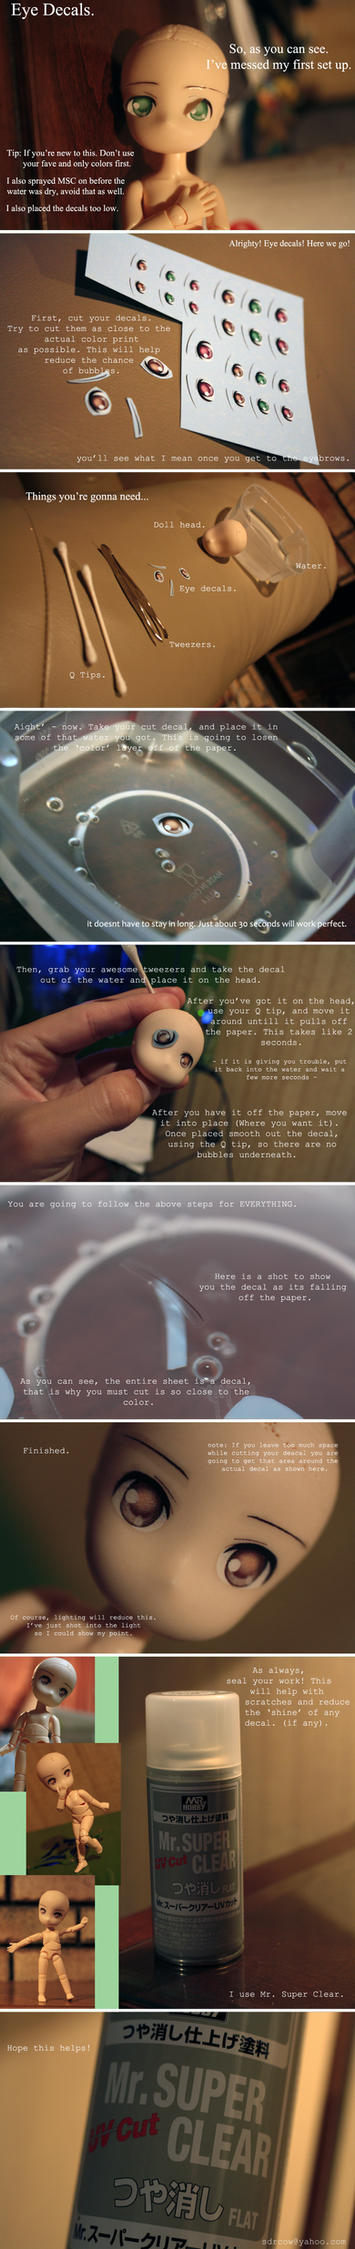 Obitsu Eye Decal Tutorial. by sdrcow